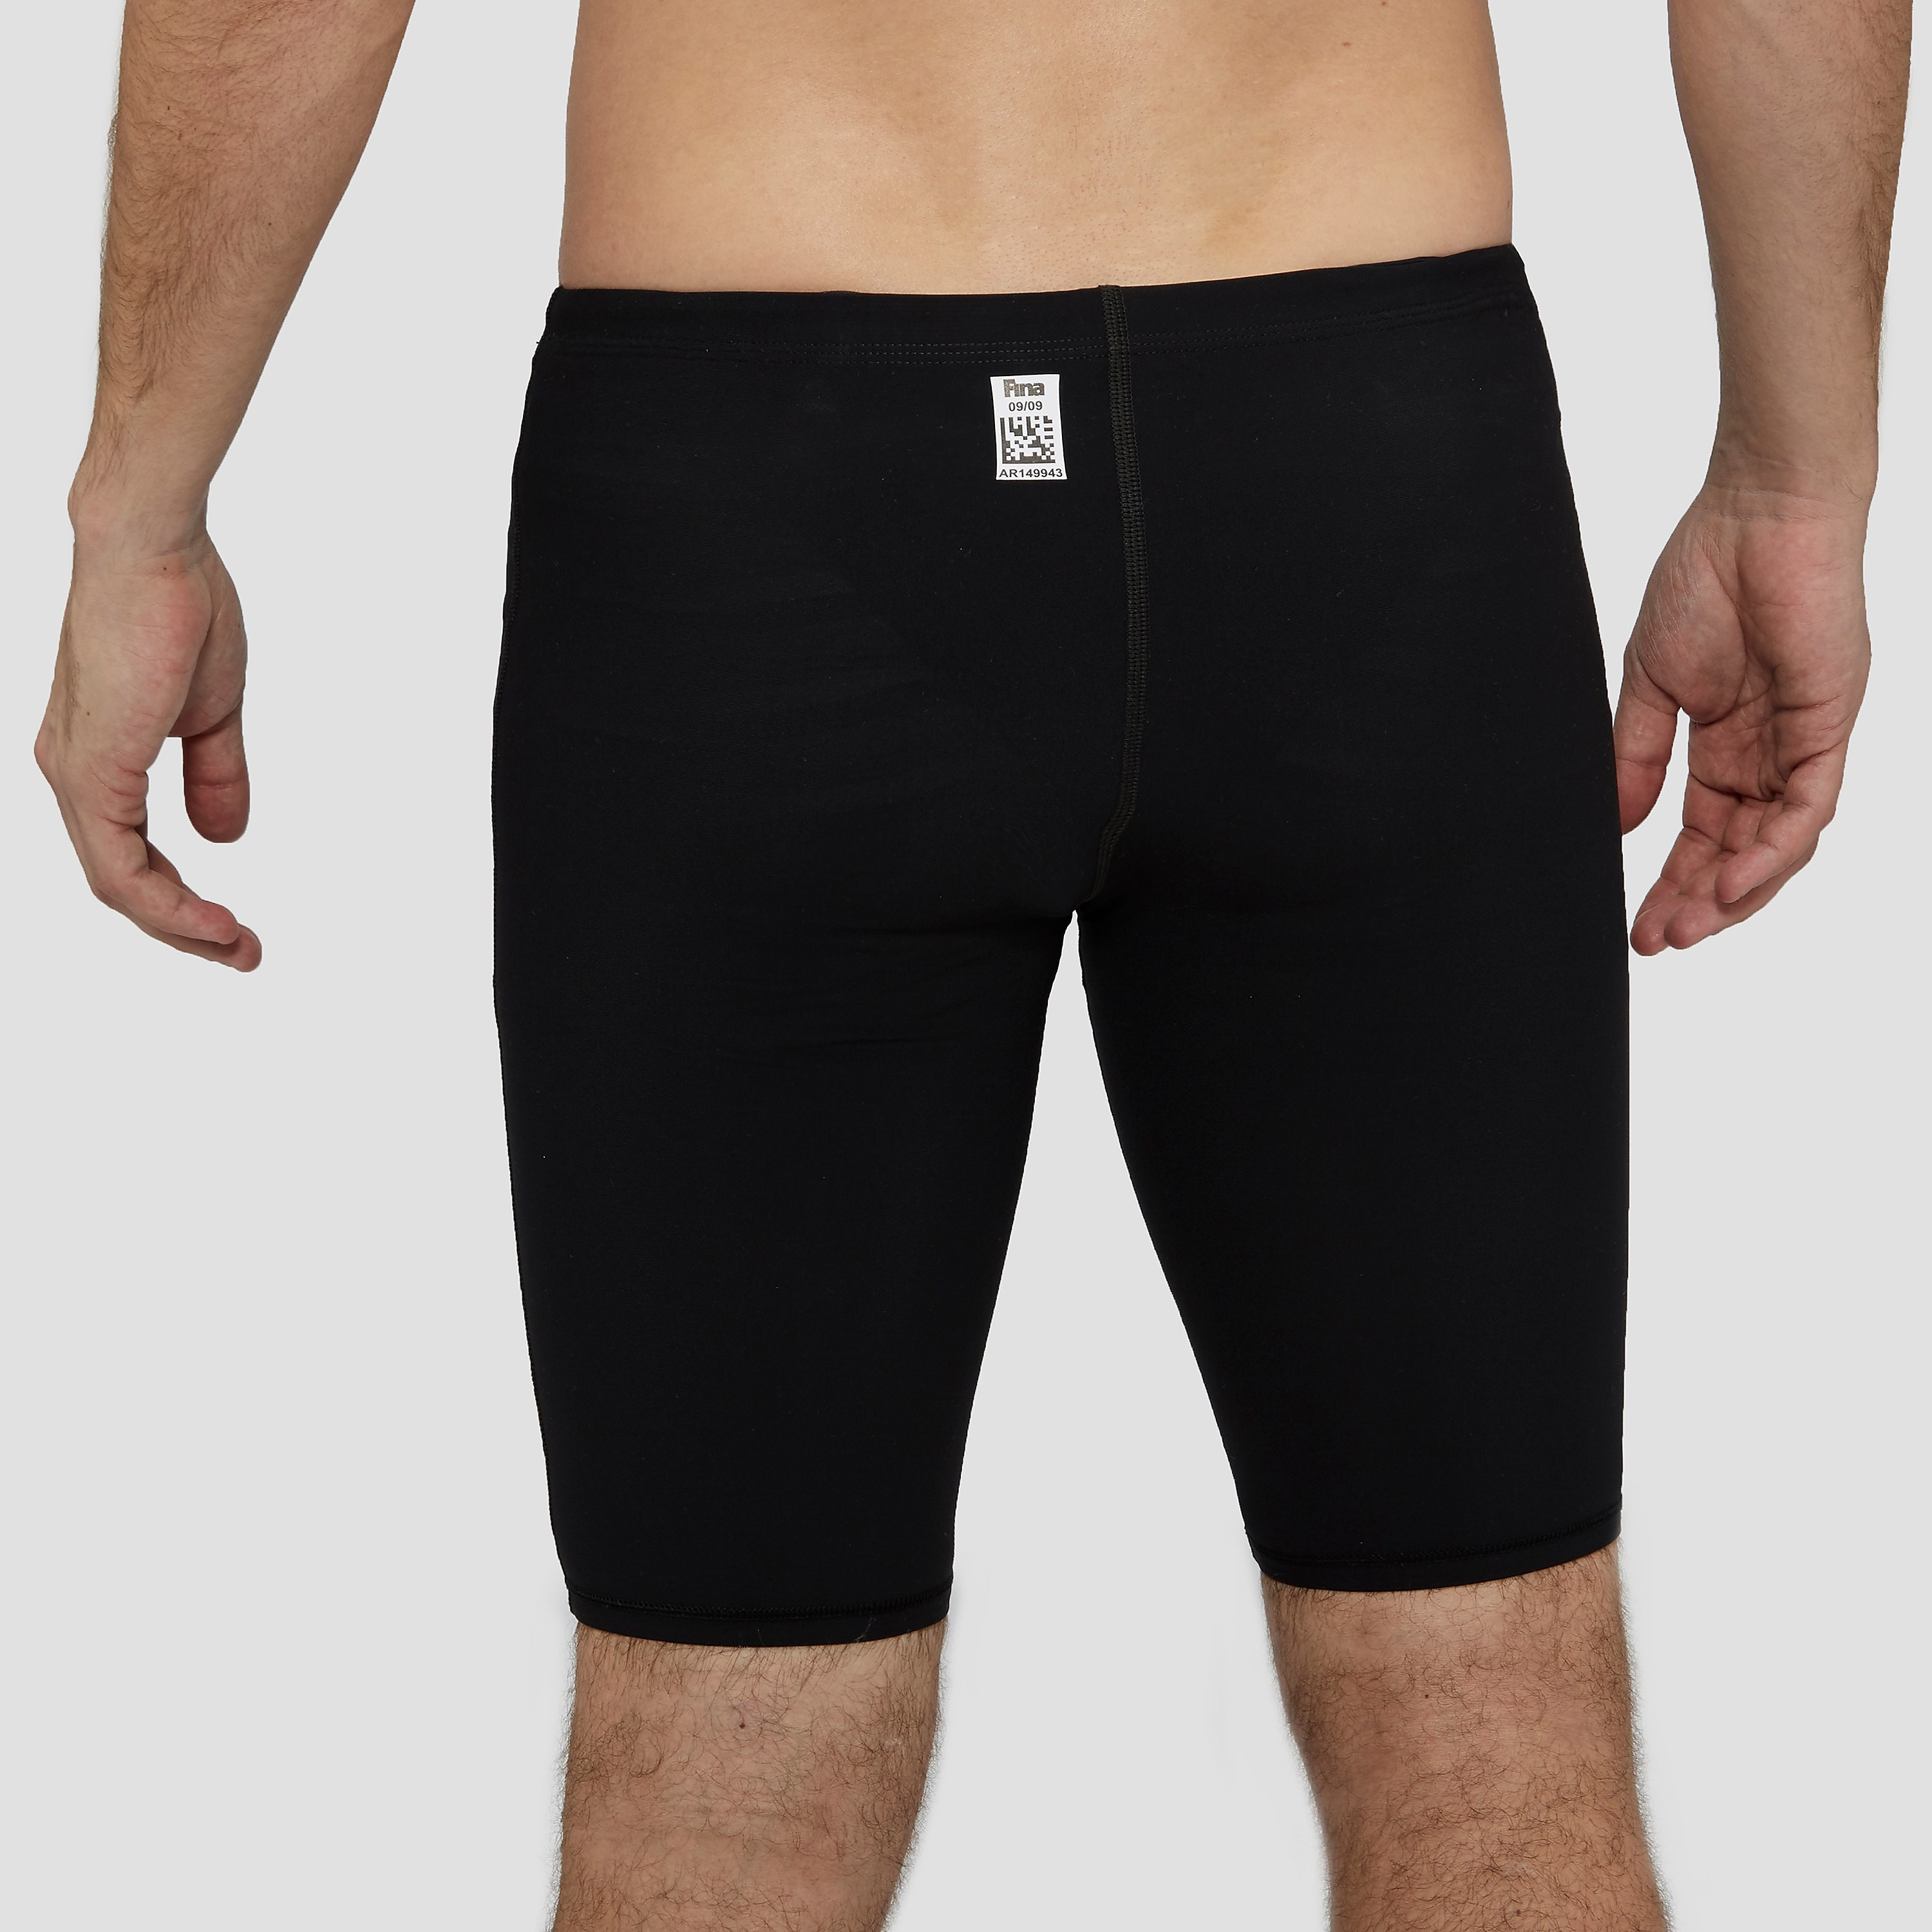 Arena Powerskin ST Men's Swimming Jammer